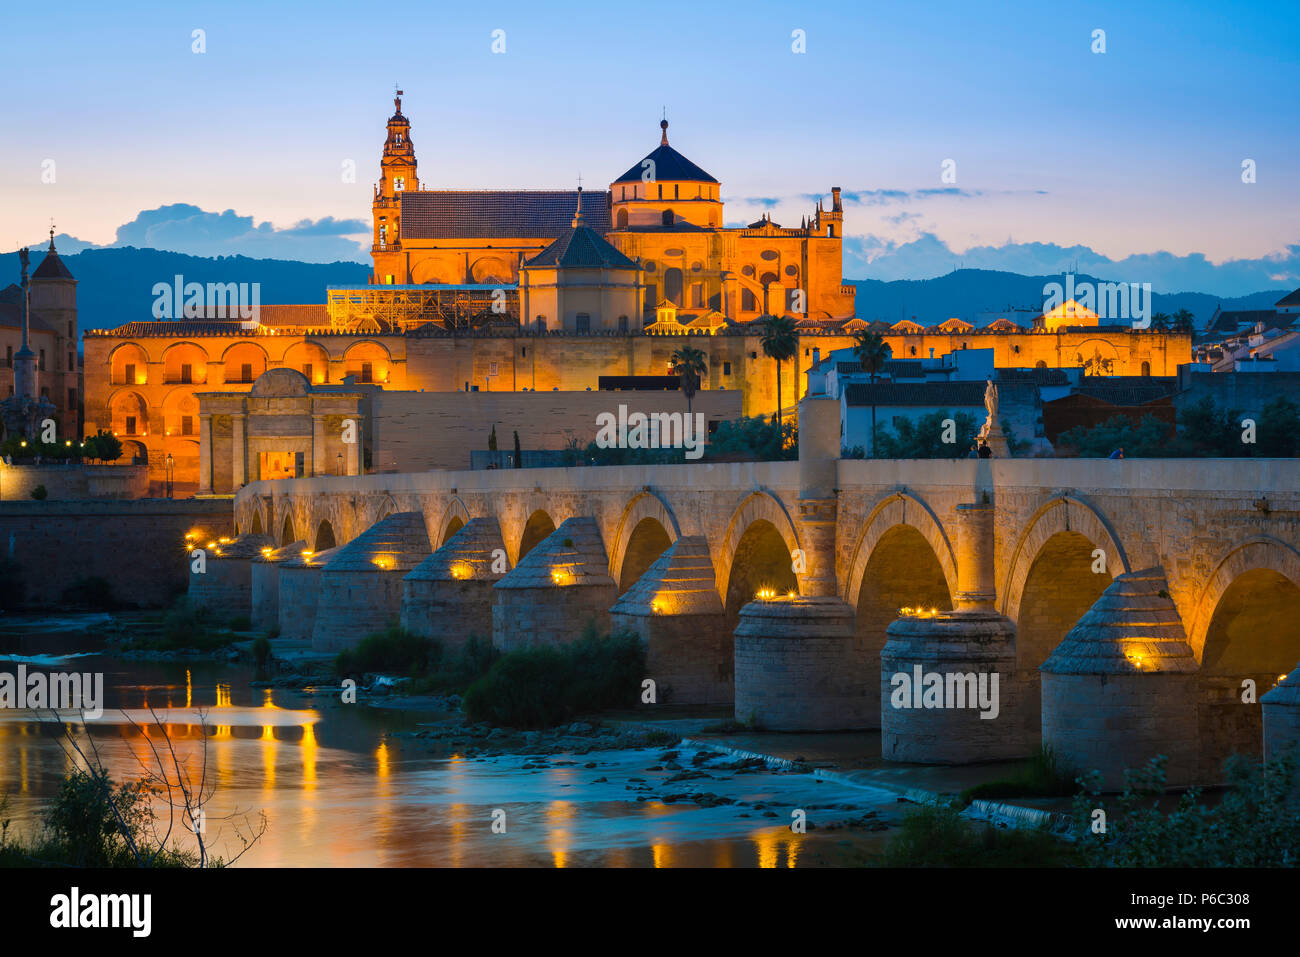 Andalucia Spain architecture, view at night across the Roman bridge on the Rio Guadalquivir towards the Cathedral and La Mezquita in Cordoba, Spain. - Stock Image